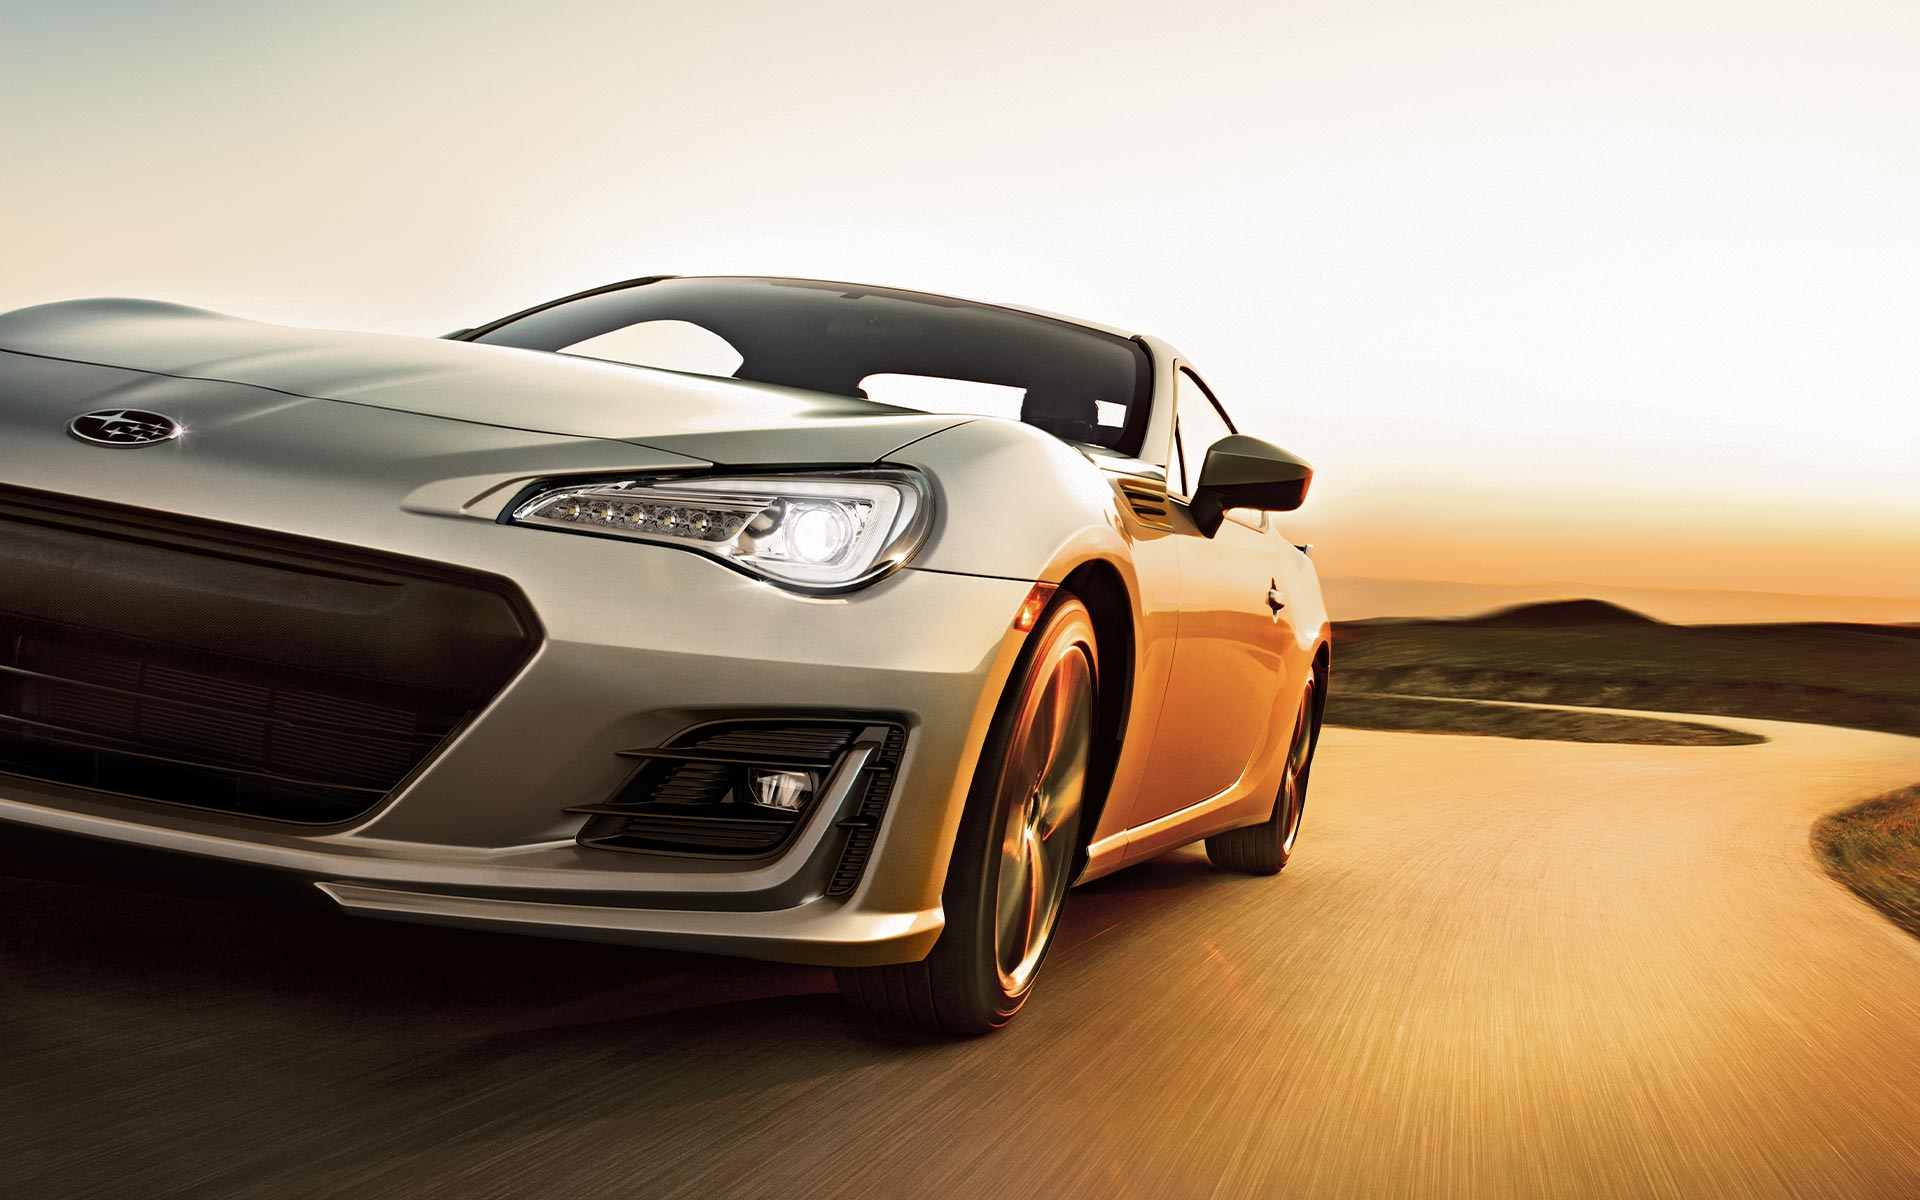 A 2020 BRZ driving at sunset.